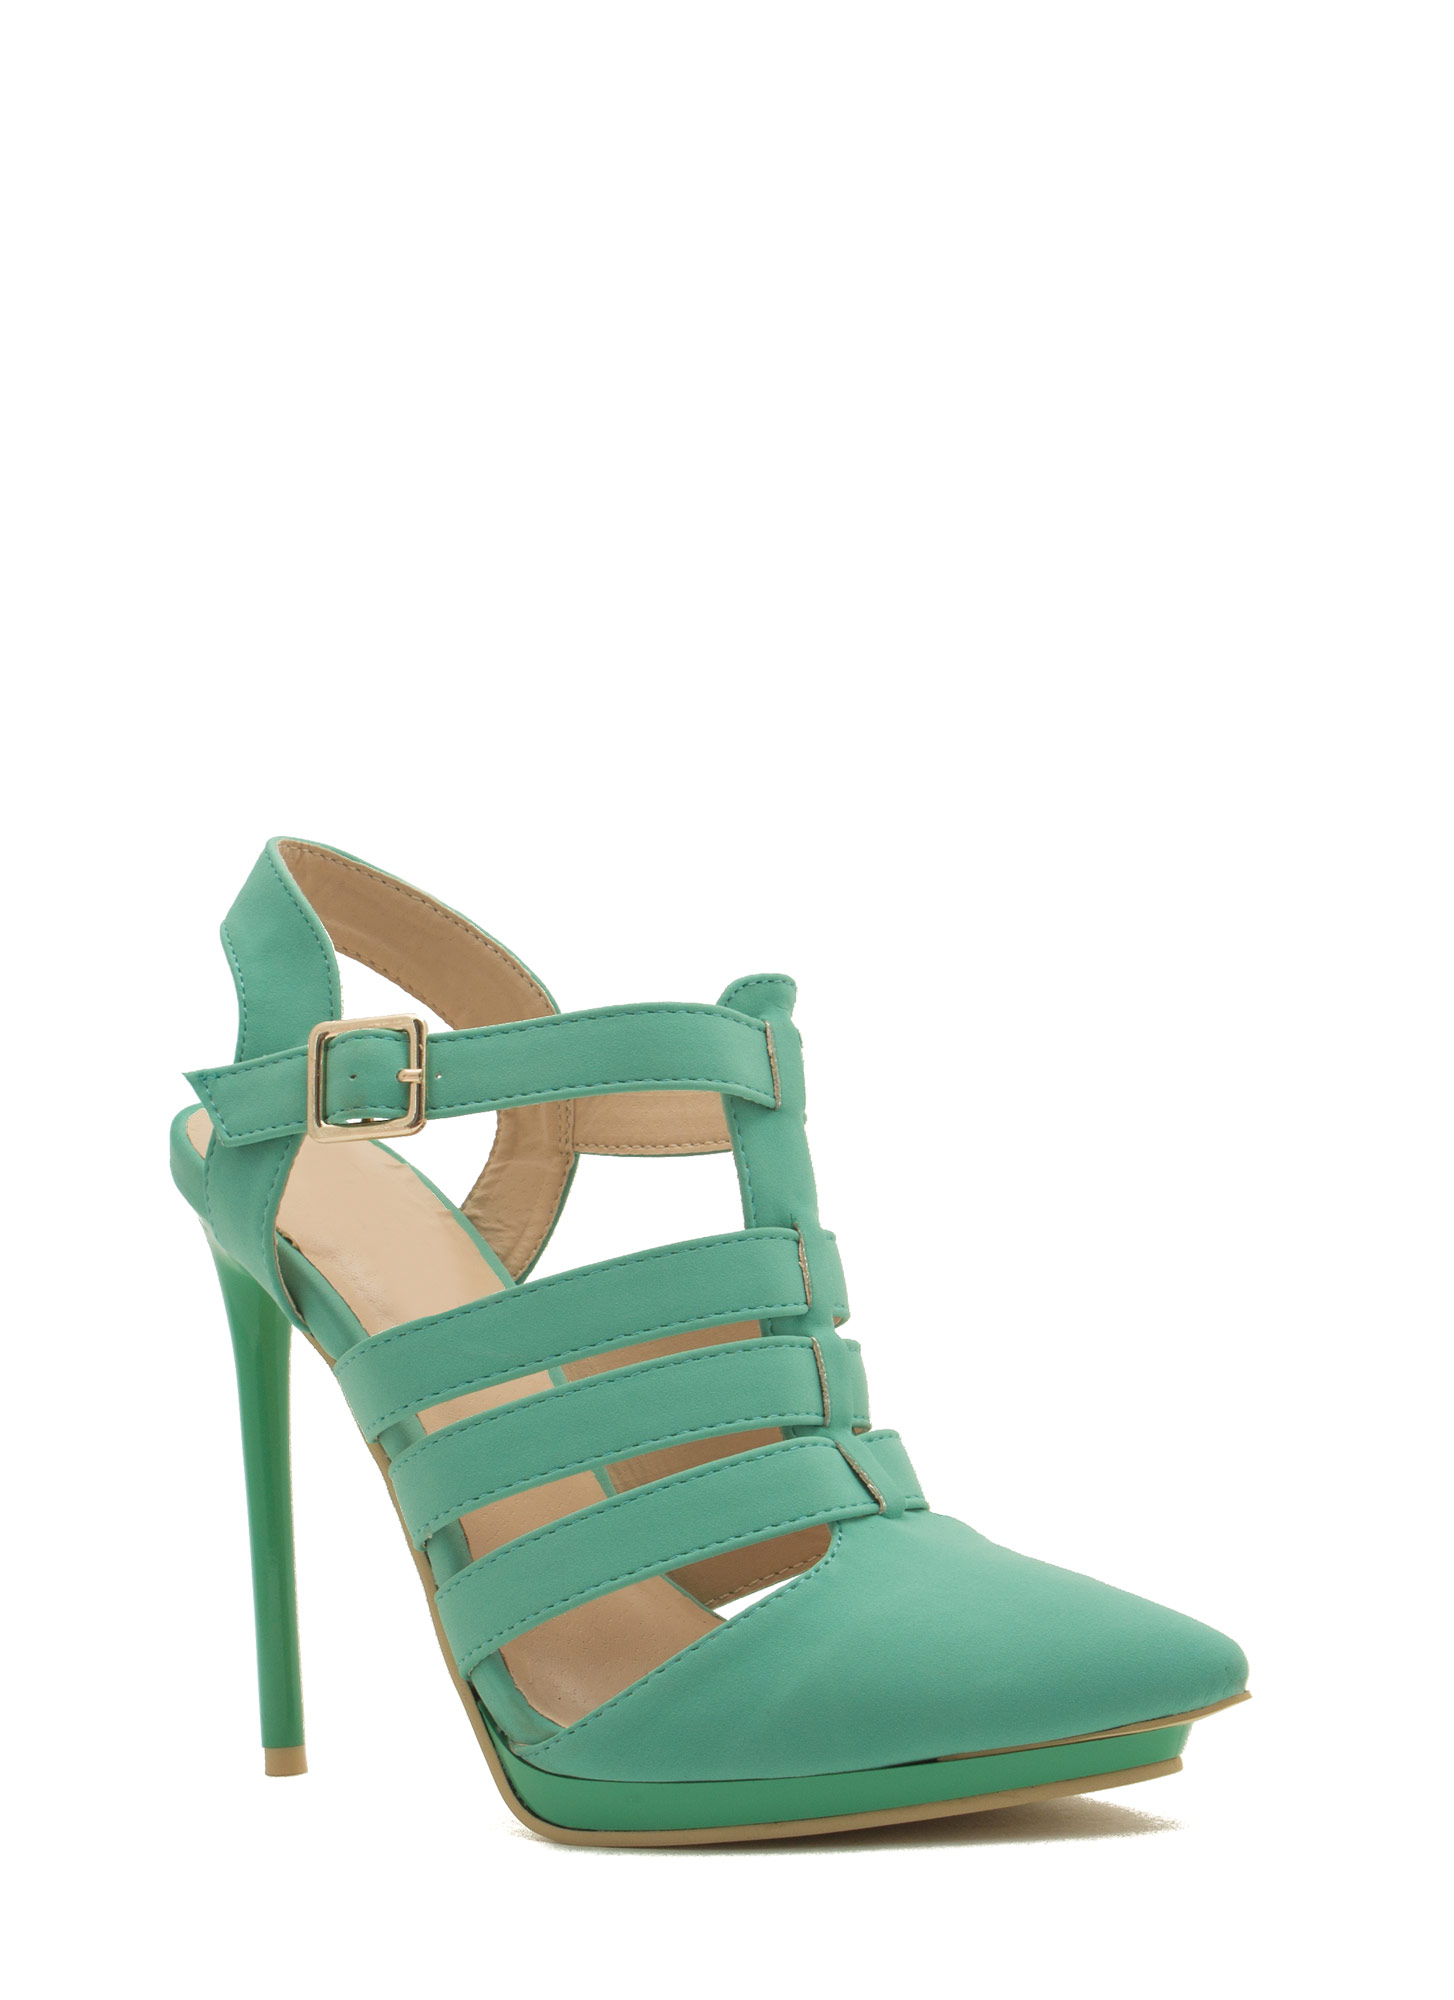 Get Your Point Across Strappy Heels MINT